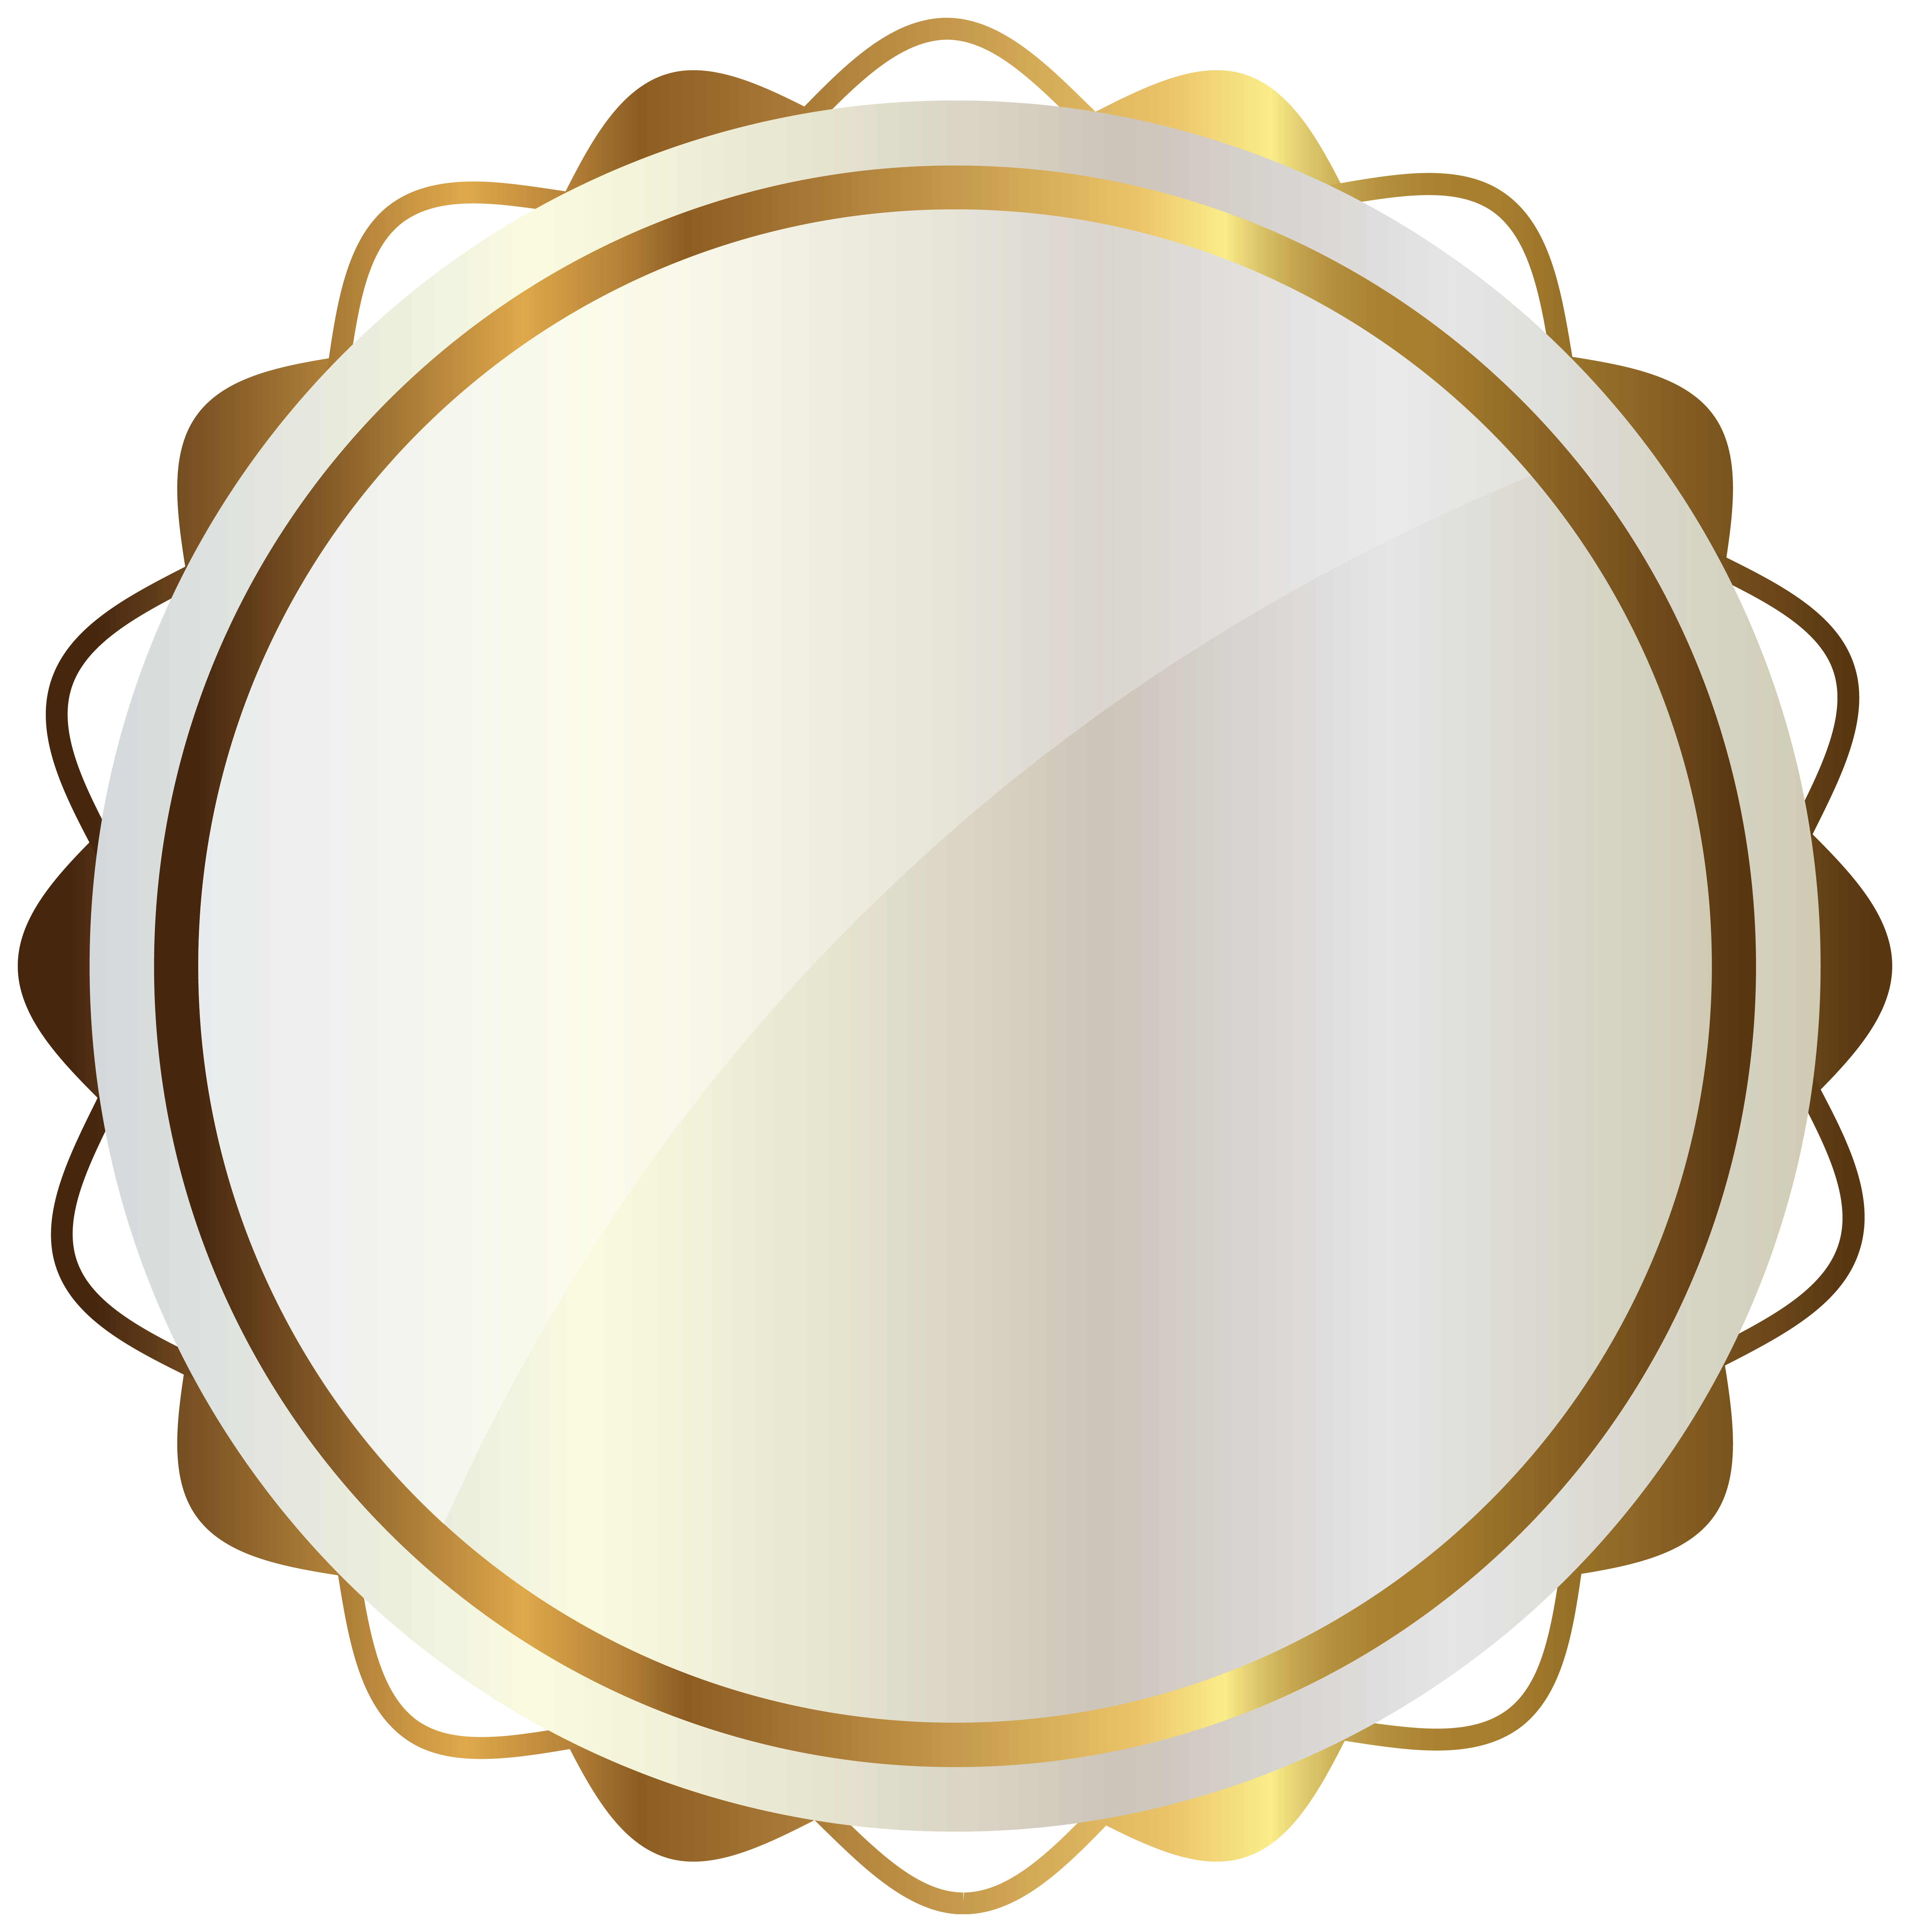 Circle clipart bread. White seal with gold